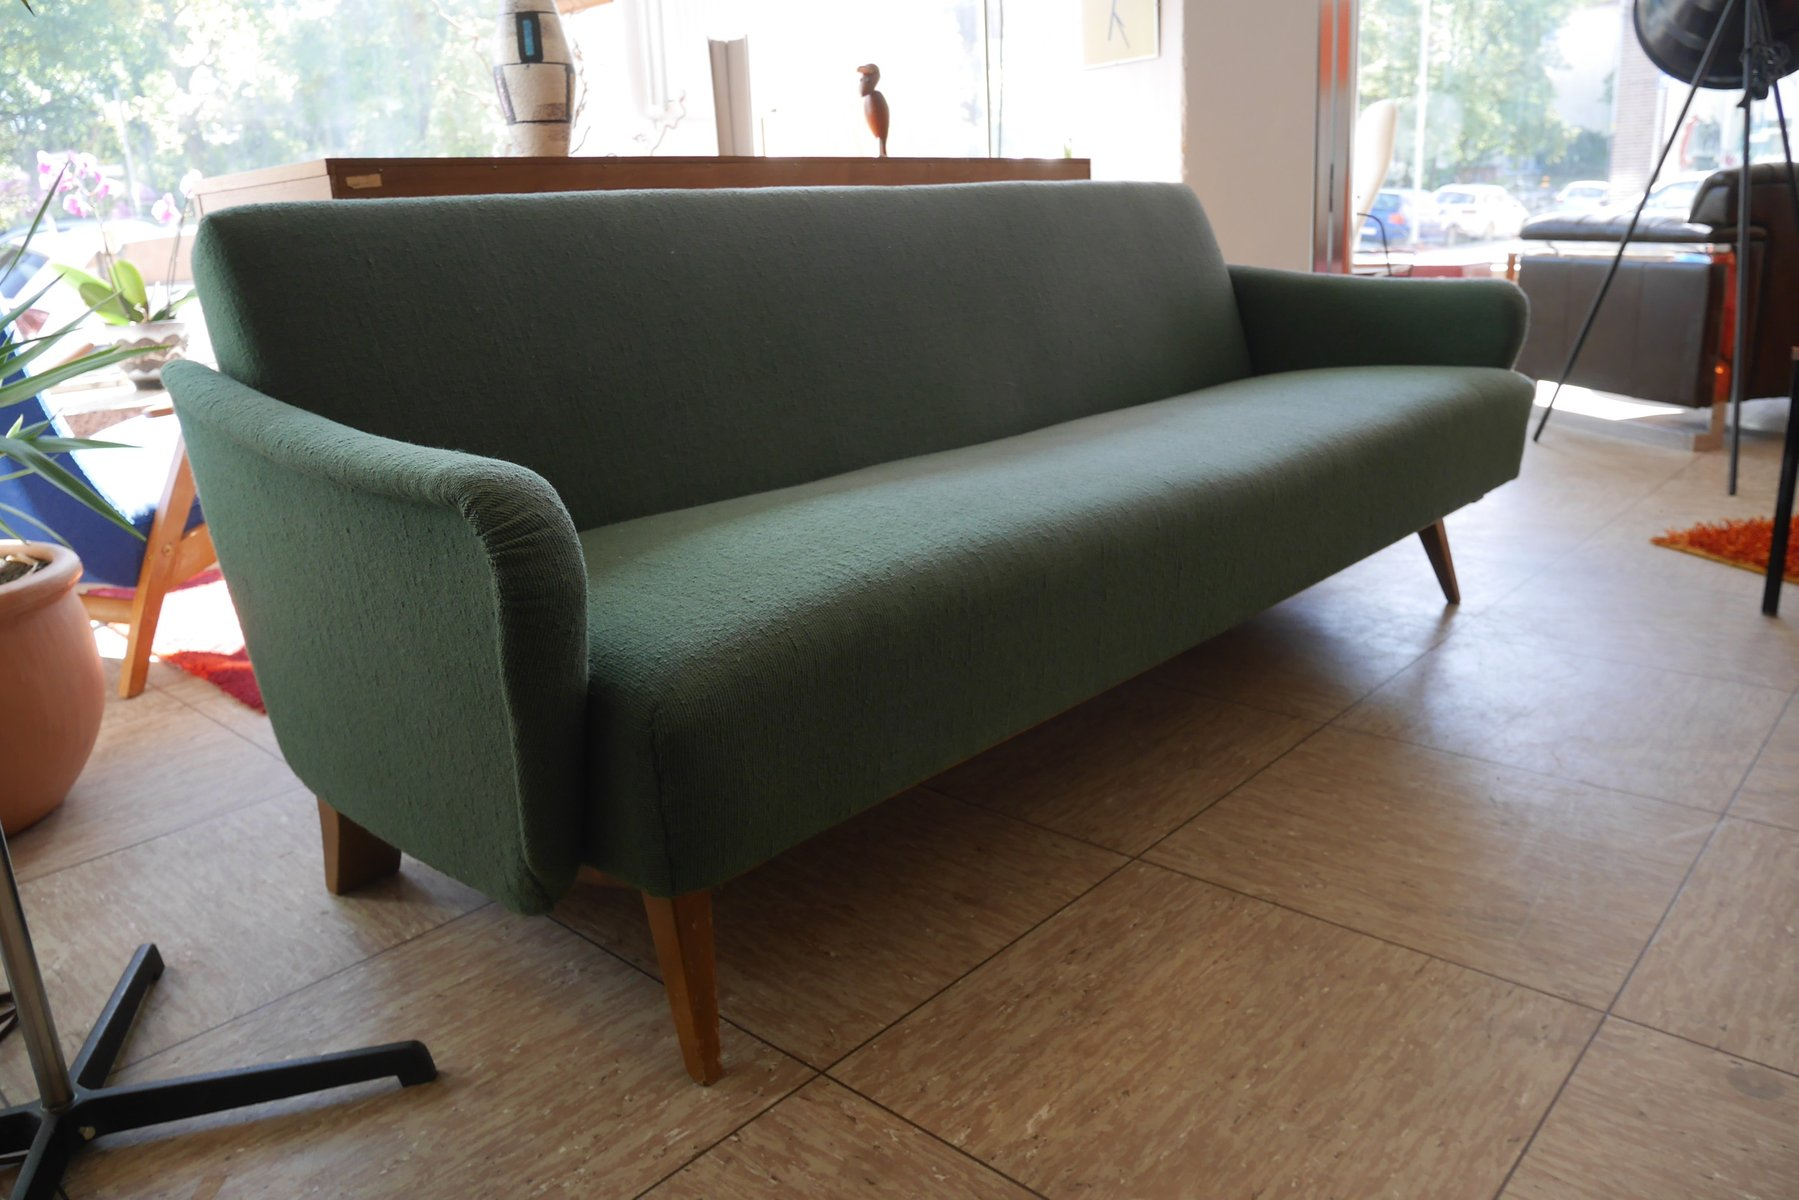 Vintage Sofa or Daybed, 1950s in vendita su Pamono